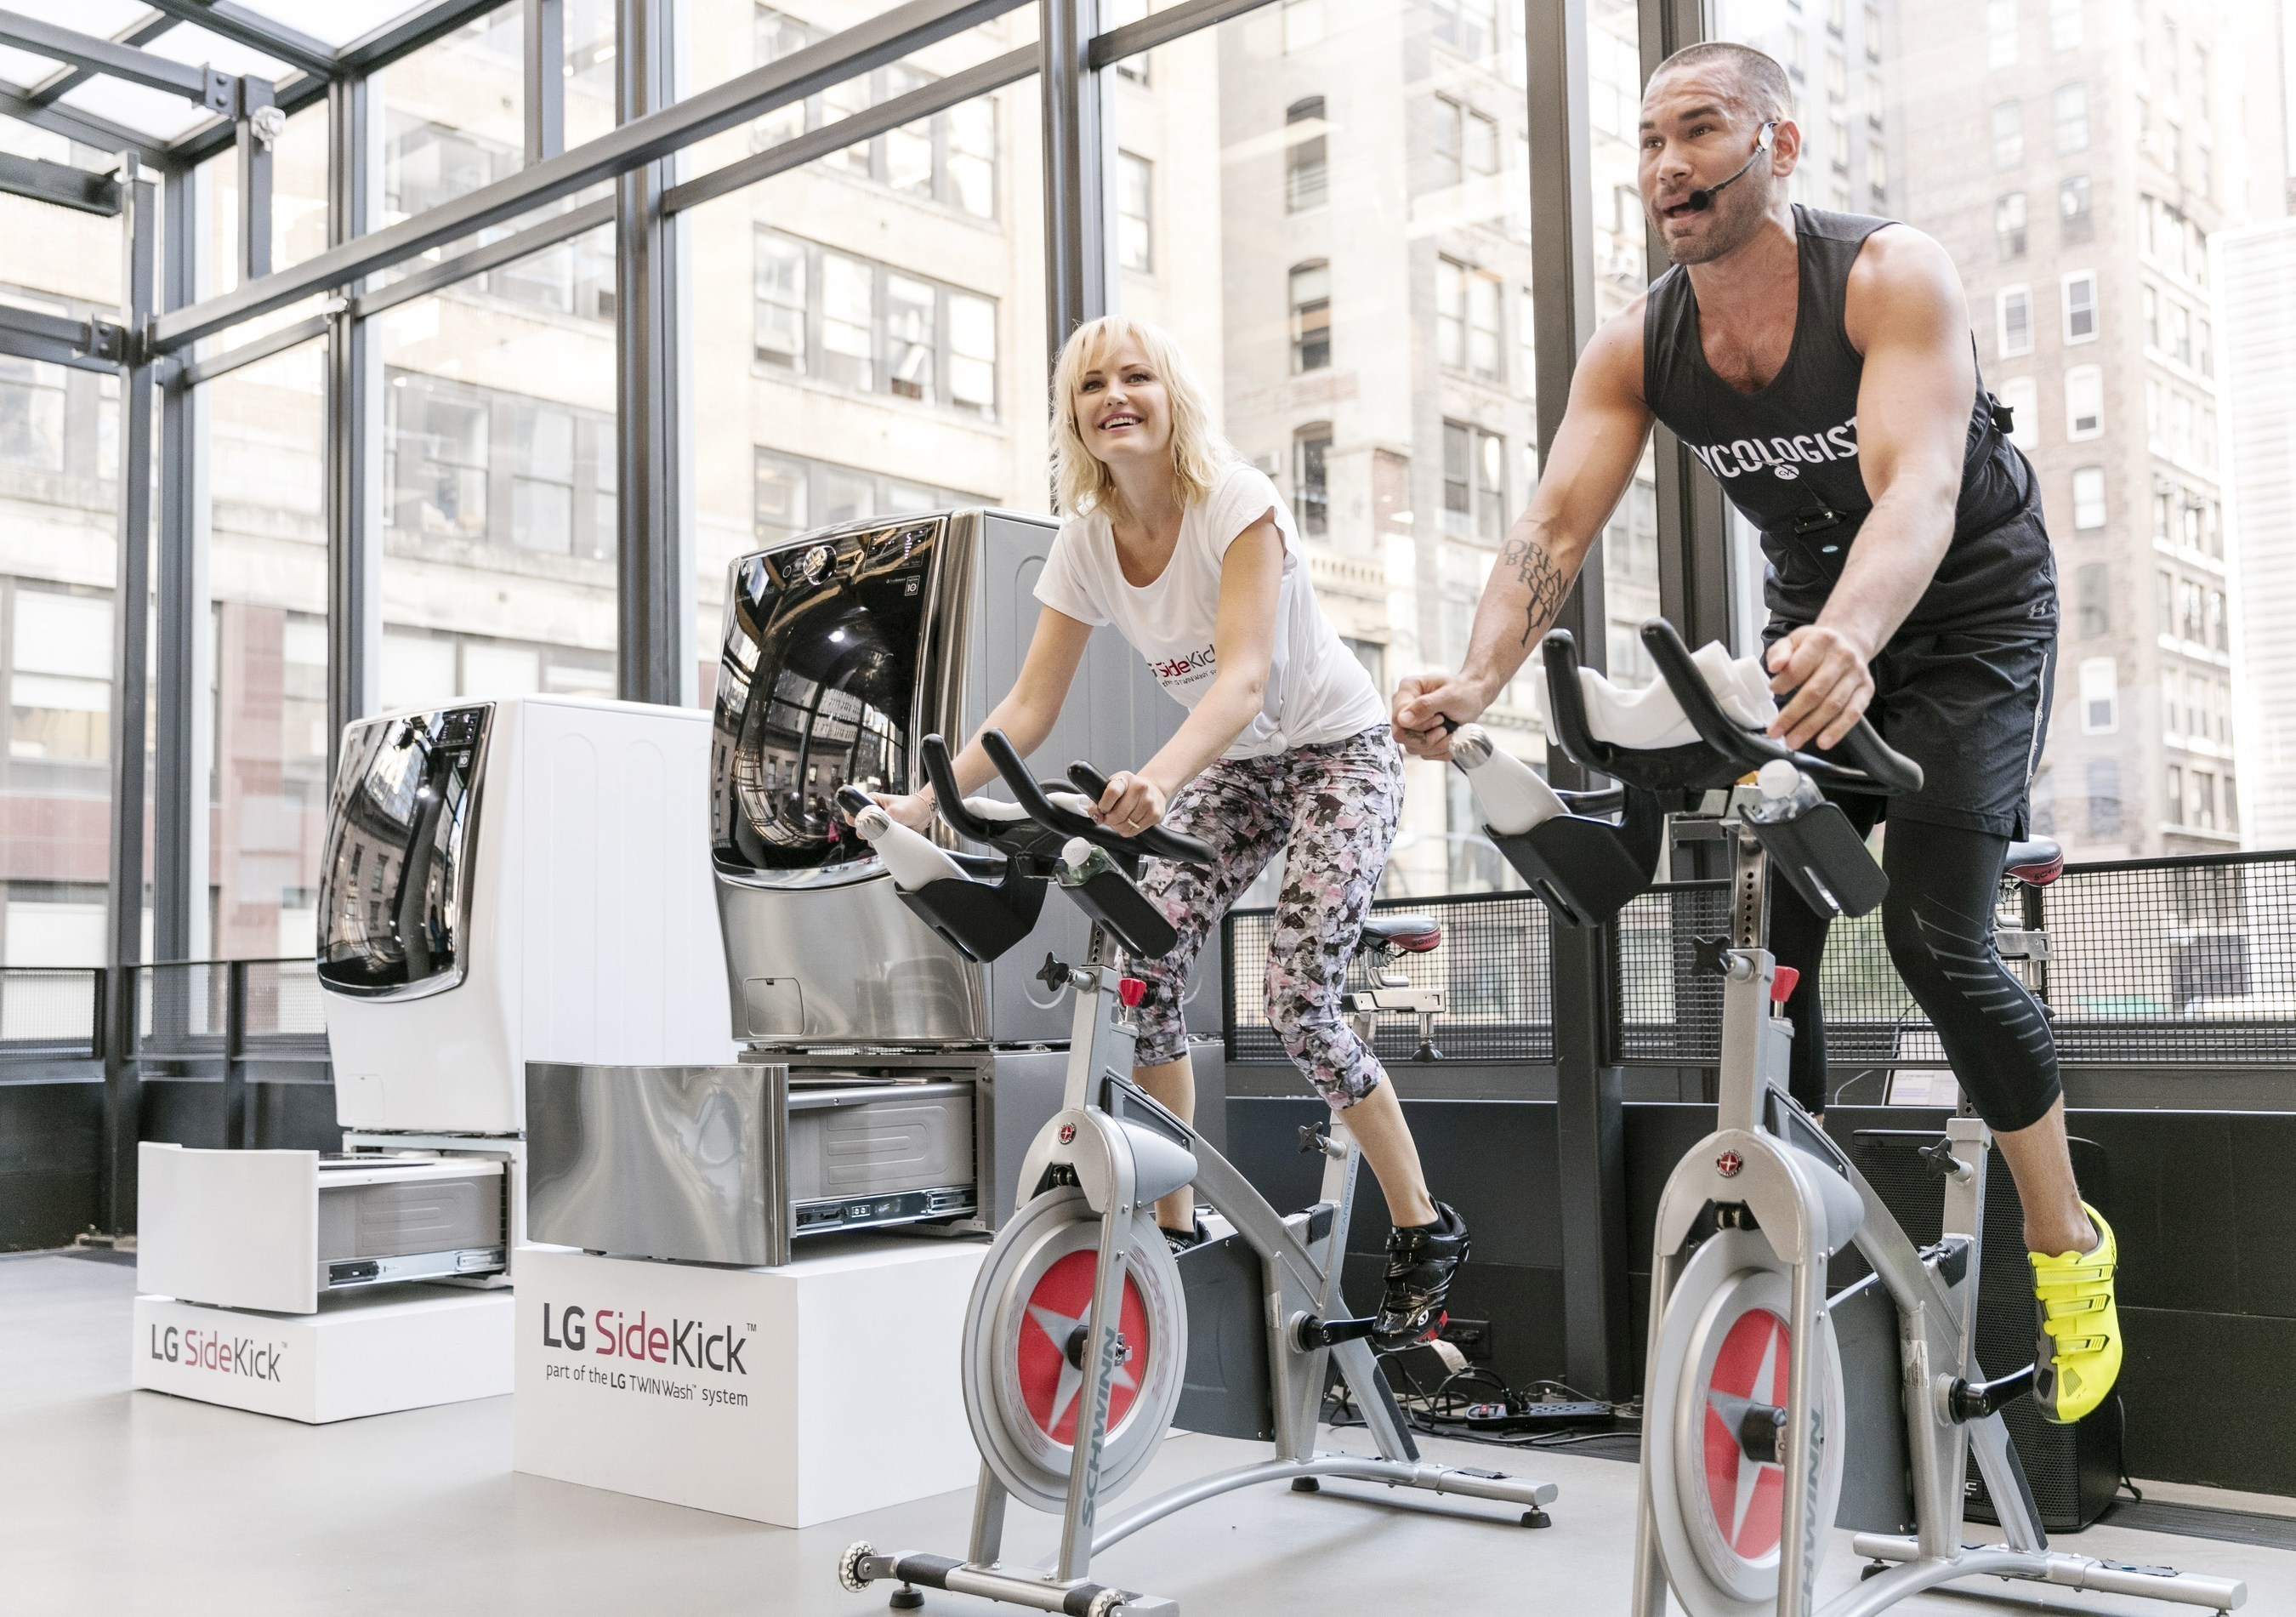 LG Teams Up With 'Billions' Star Malin Akerman To Sweat It Out In Style At LG SideKick Fitness Event